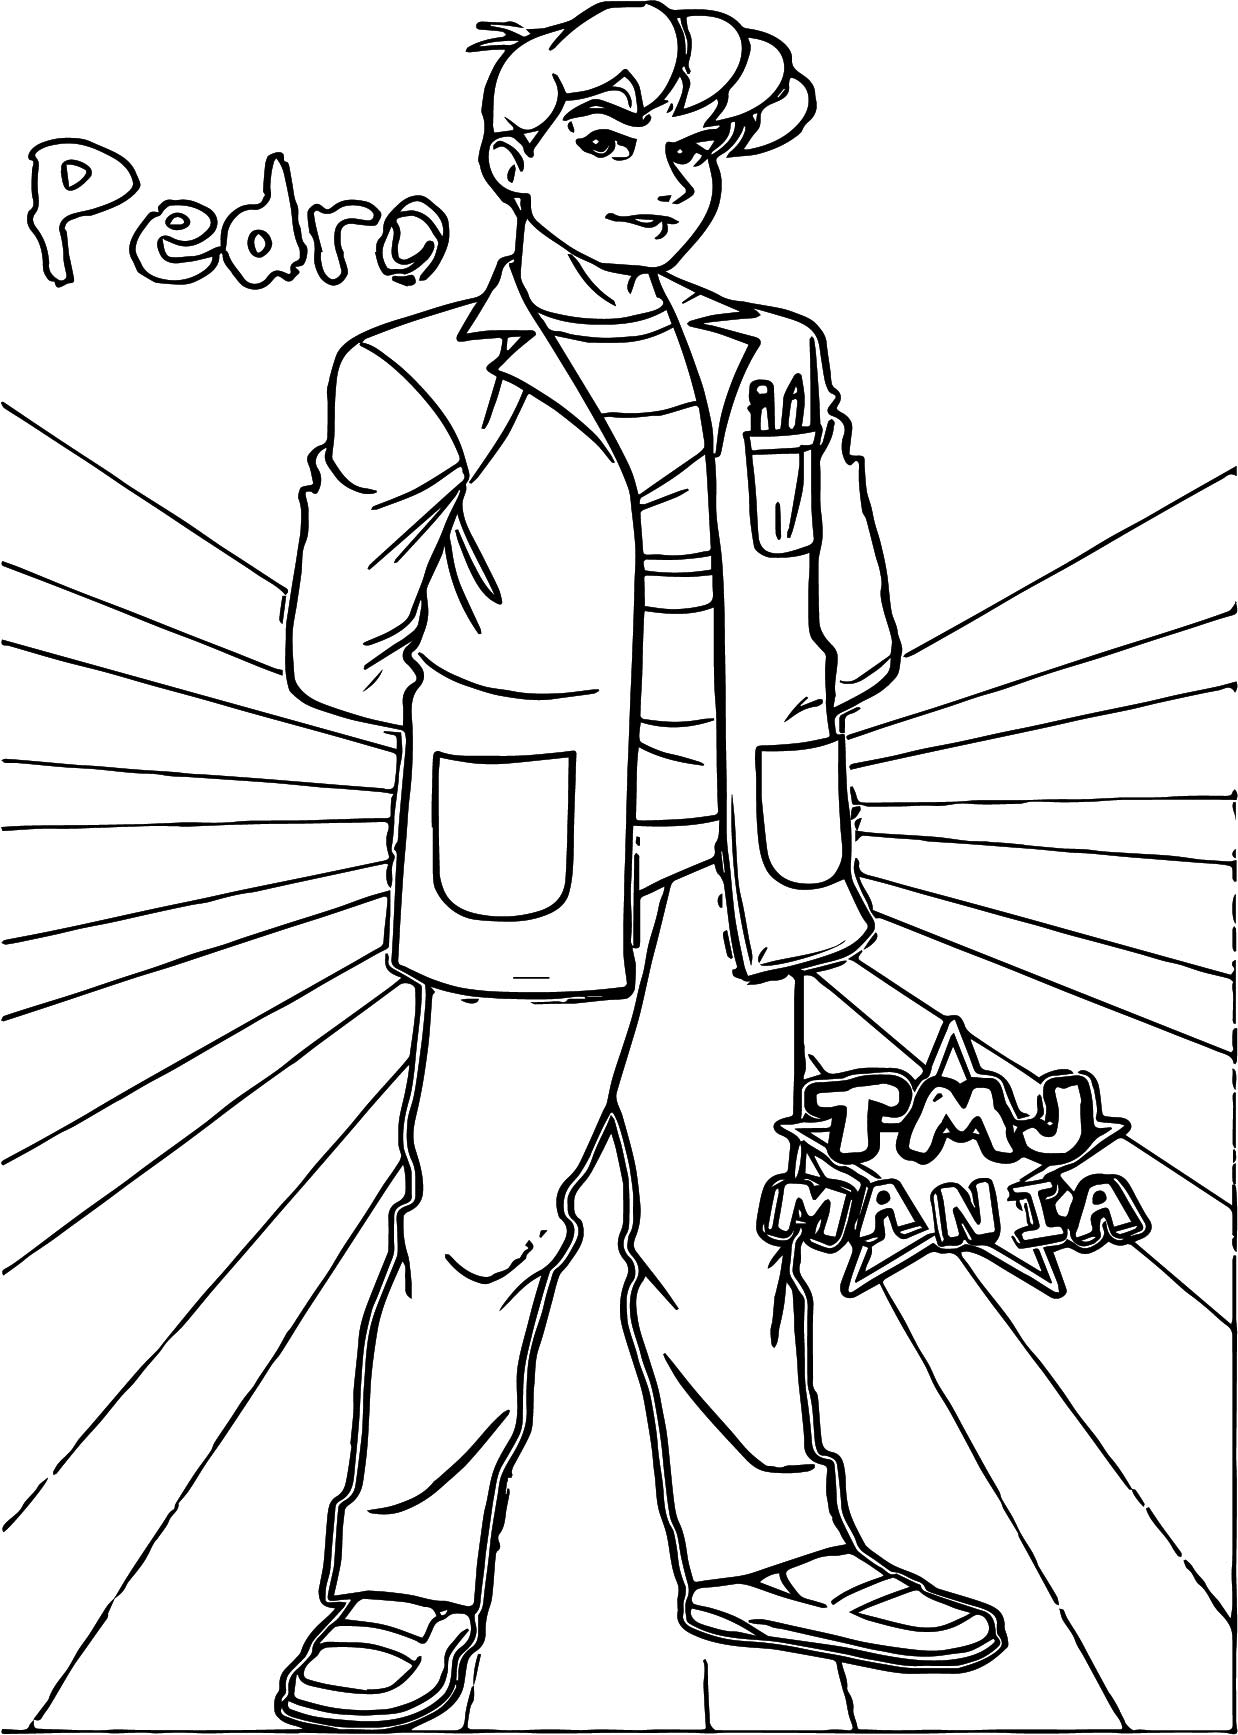 Pedro Coloring Page